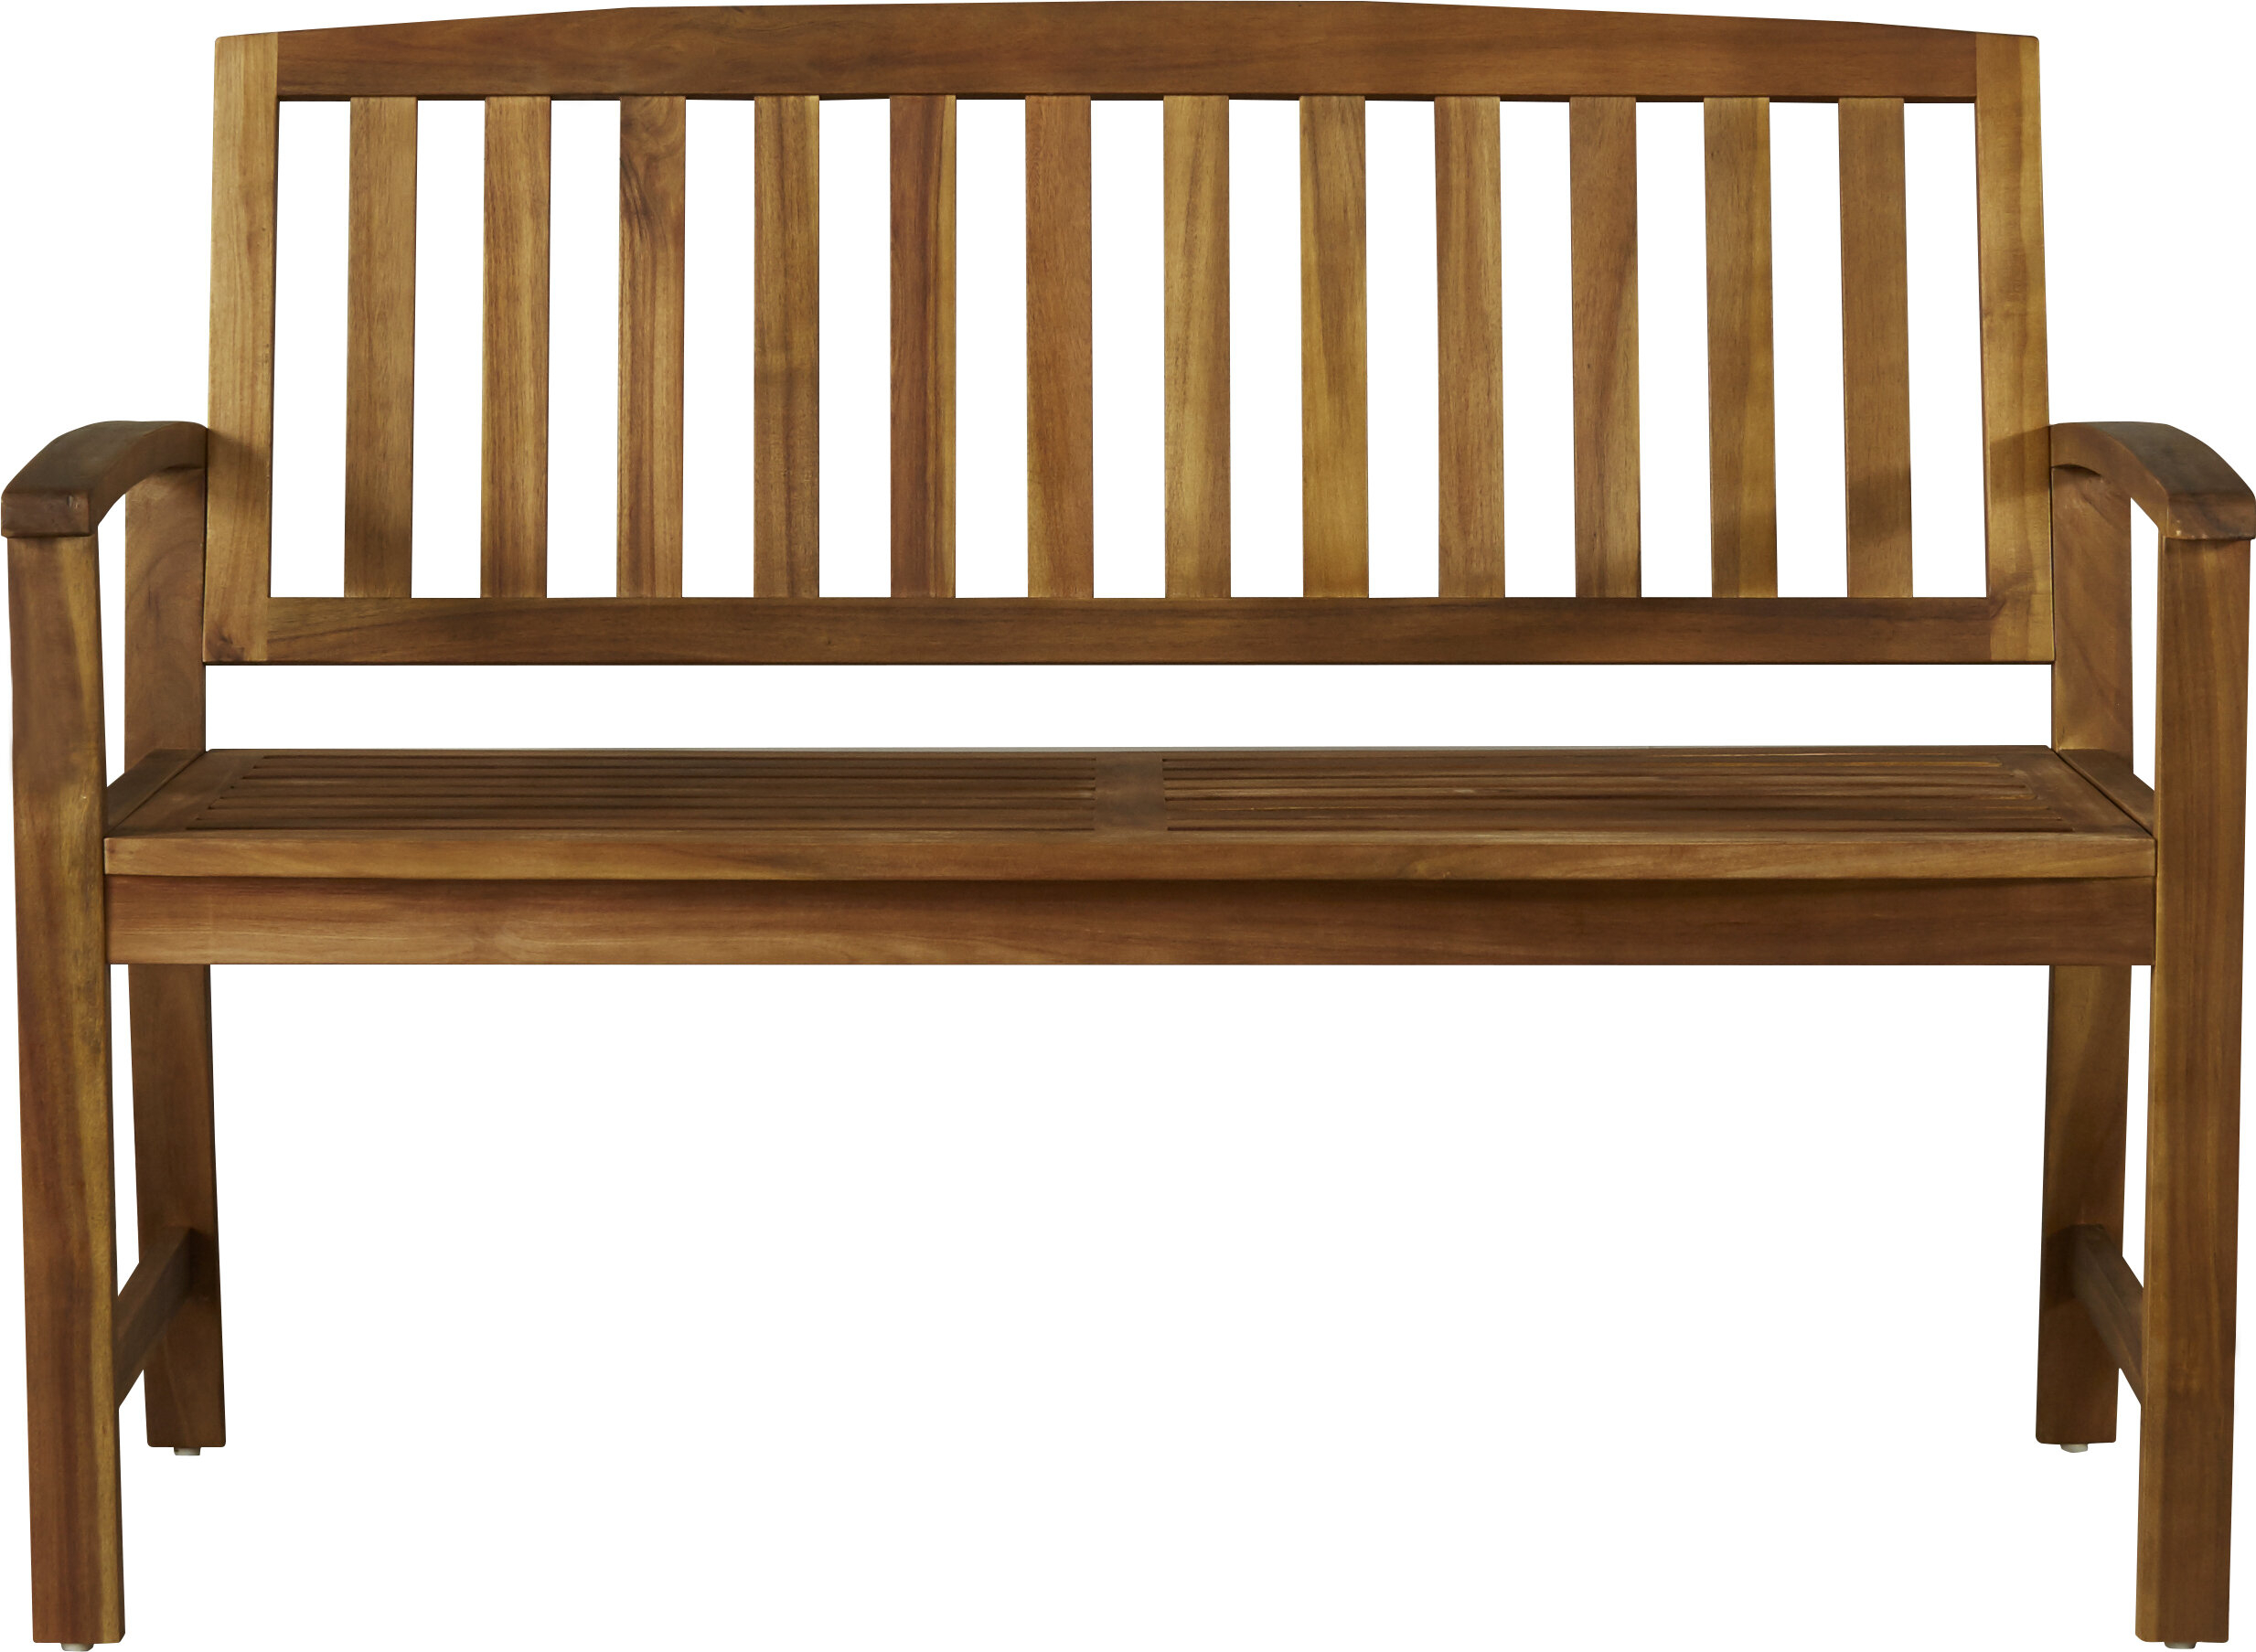 Featured Image of Leora Wooden Garden Benches